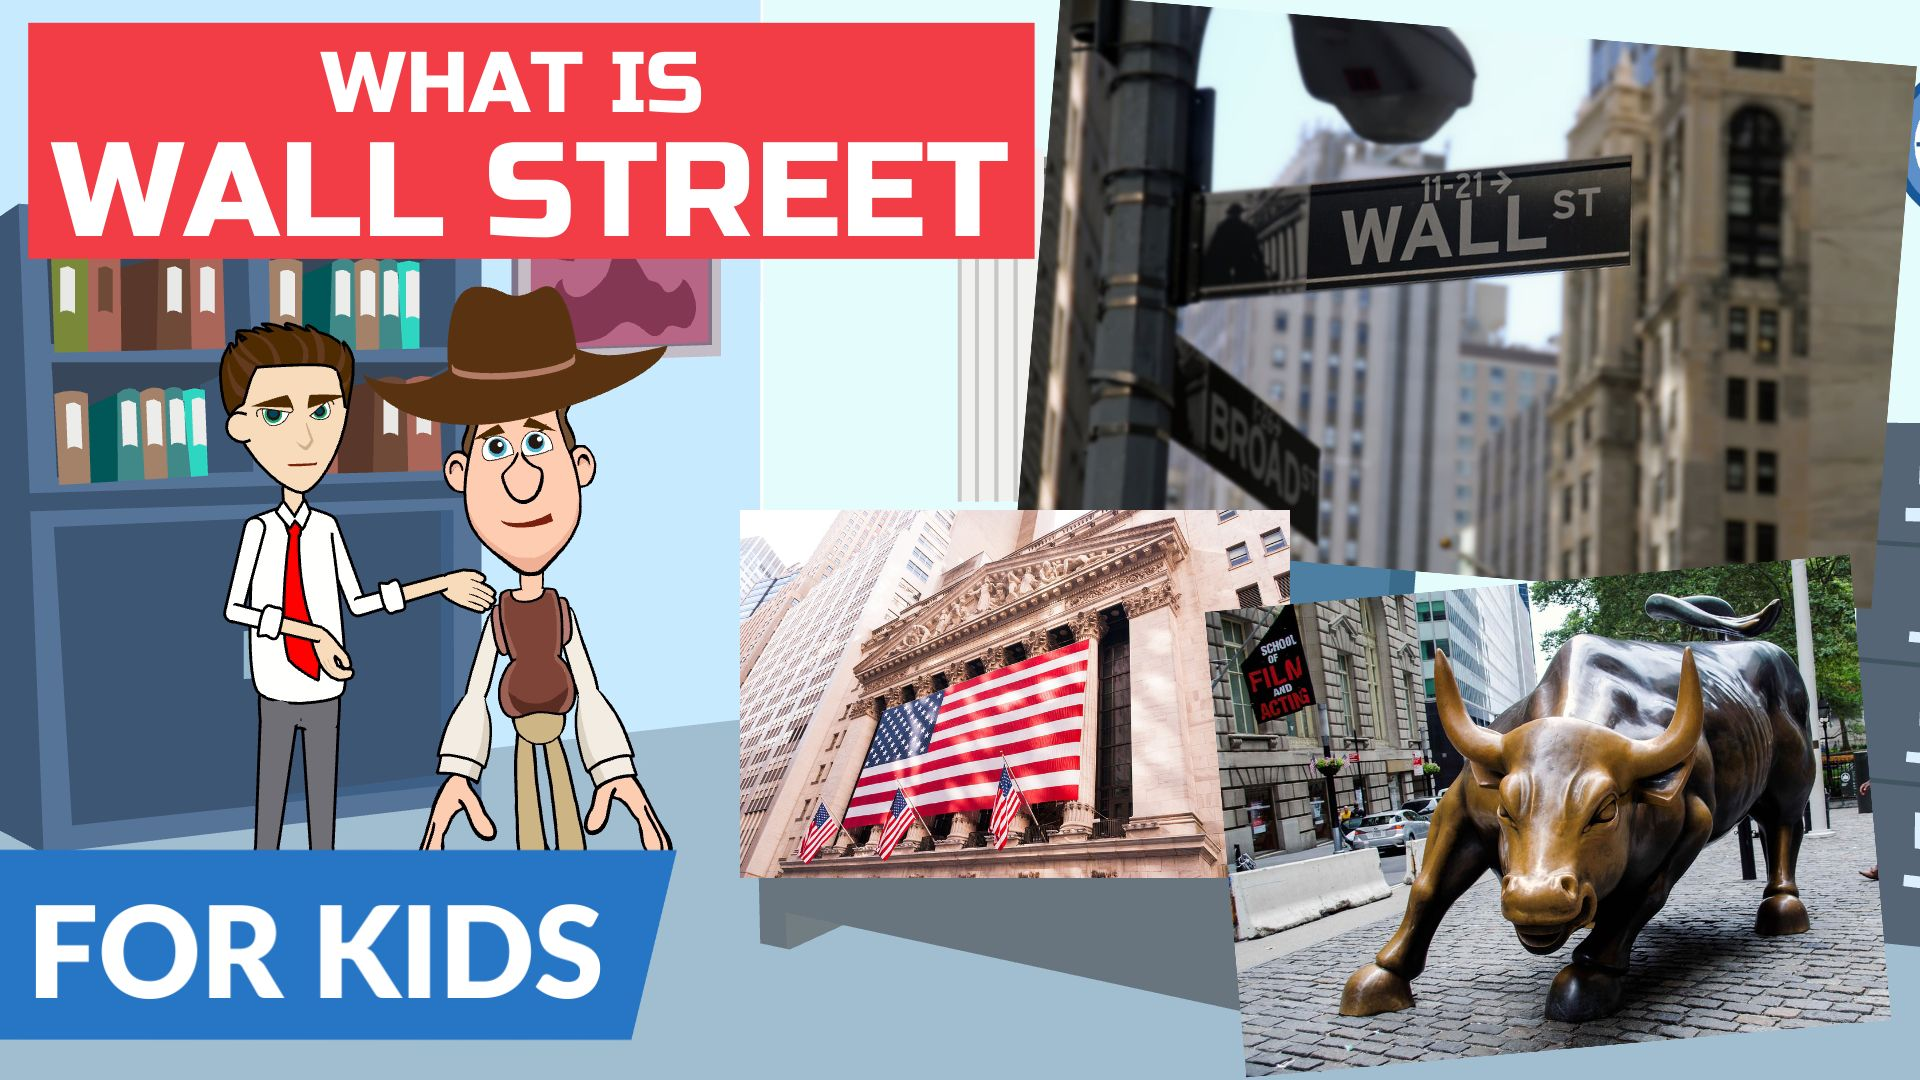 What is Wall Street